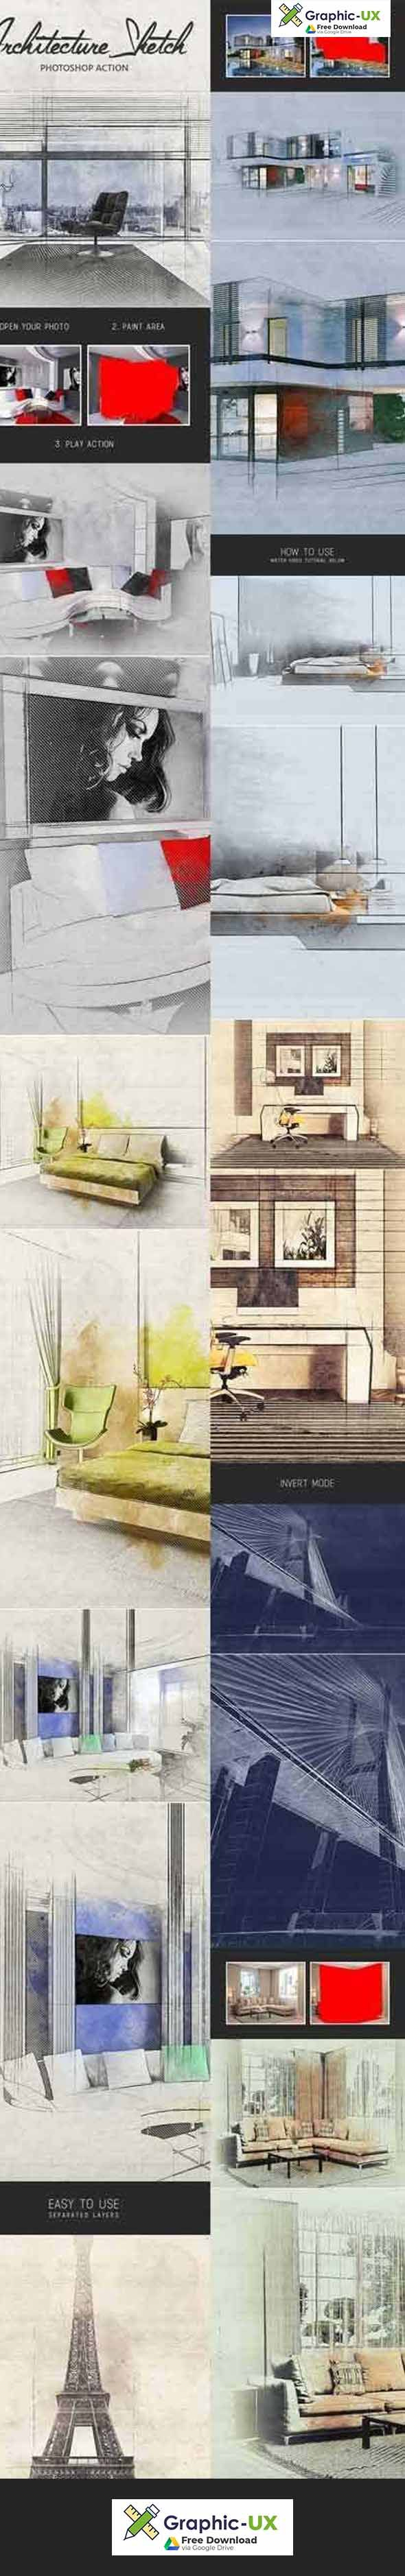 Architecture Sketch Photoshop Action Free Graphicux Free